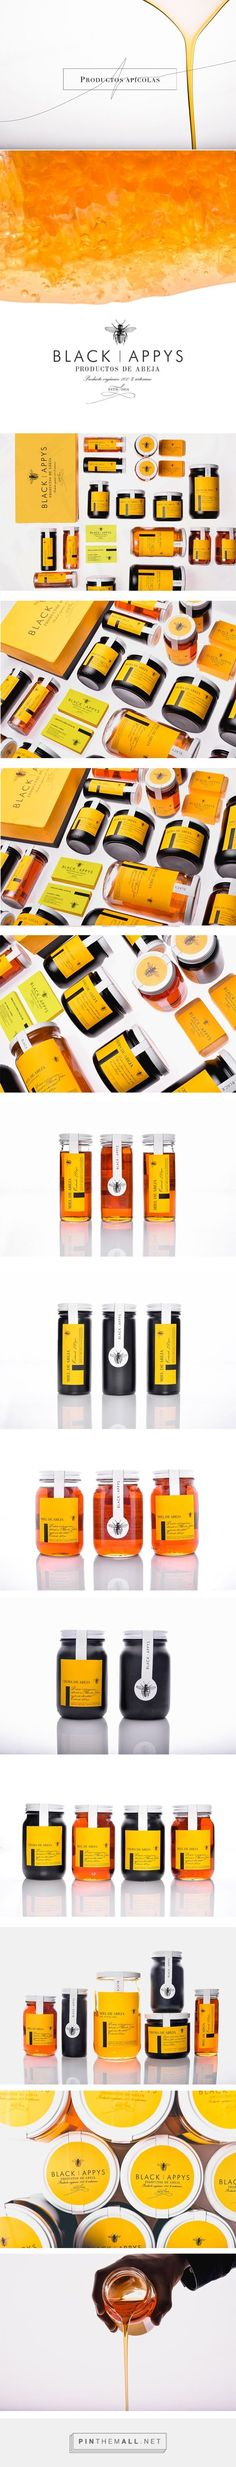 Black Appys on Behance by Daniel Barba curated by Packaging Diva PD. Yummy honey packaging.: